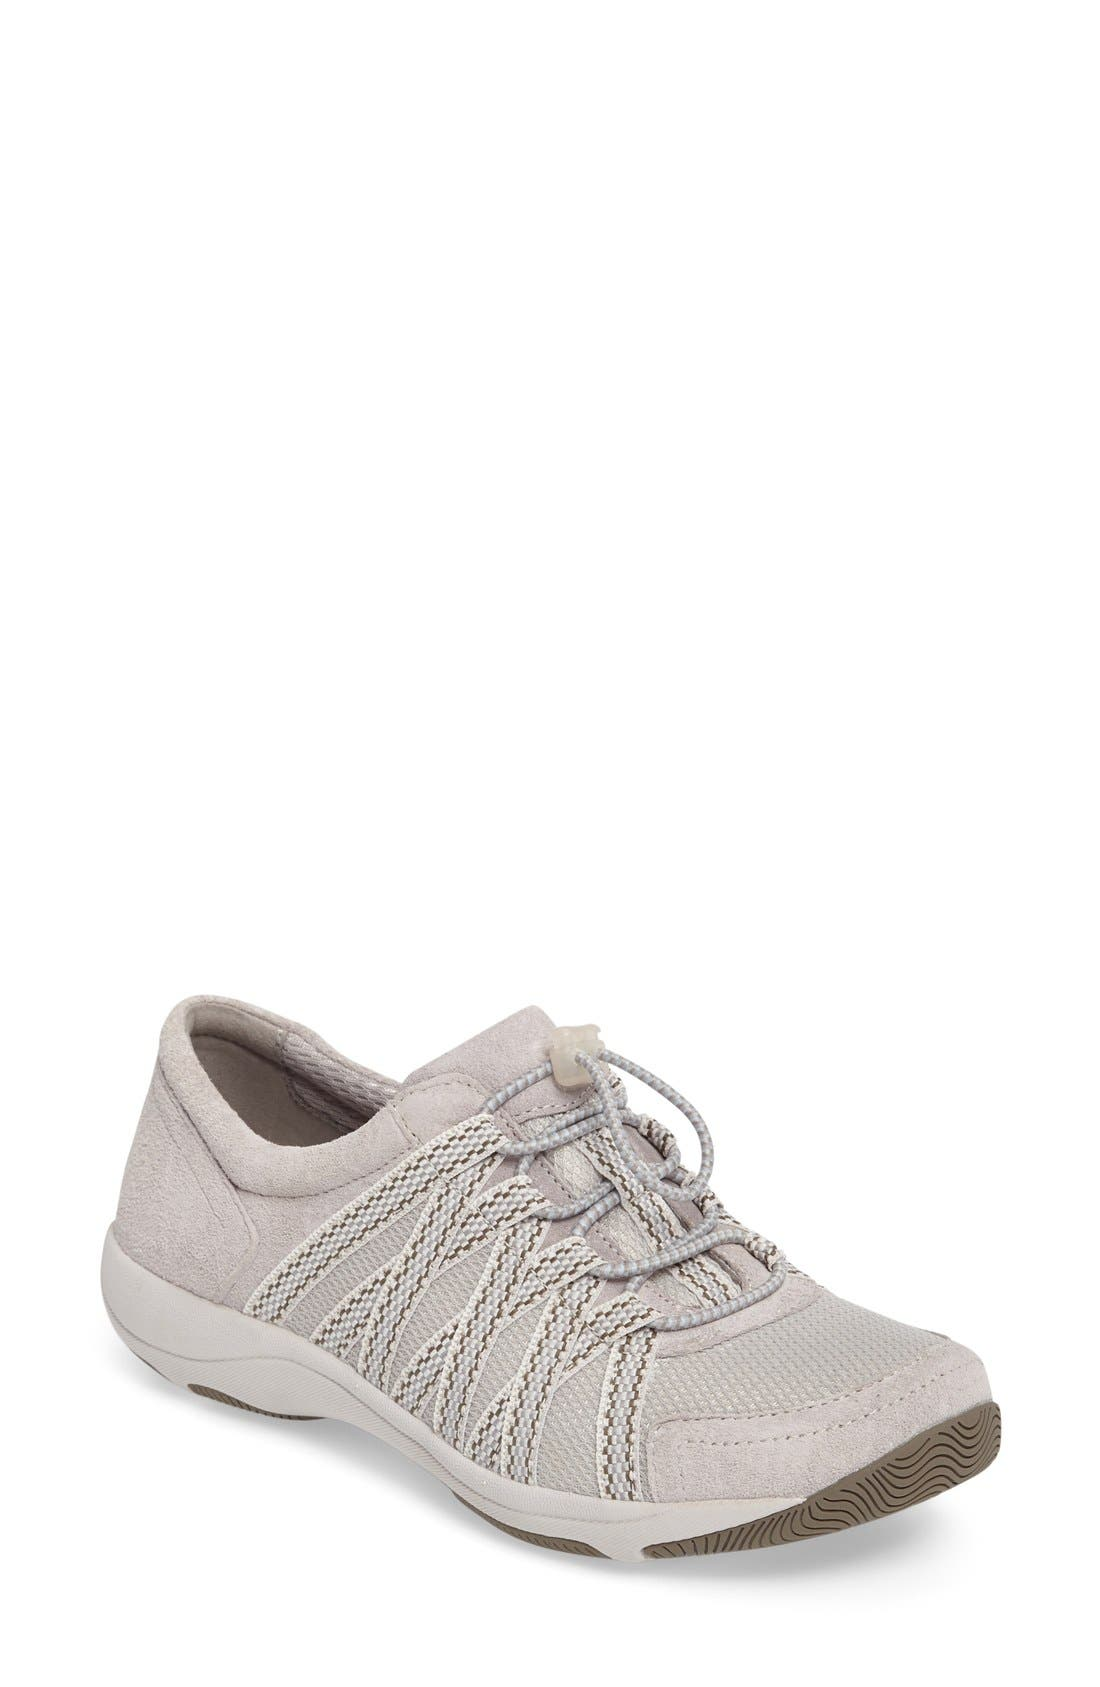 Halifax Collection Honor Sneaker,                             Main thumbnail 8, color,